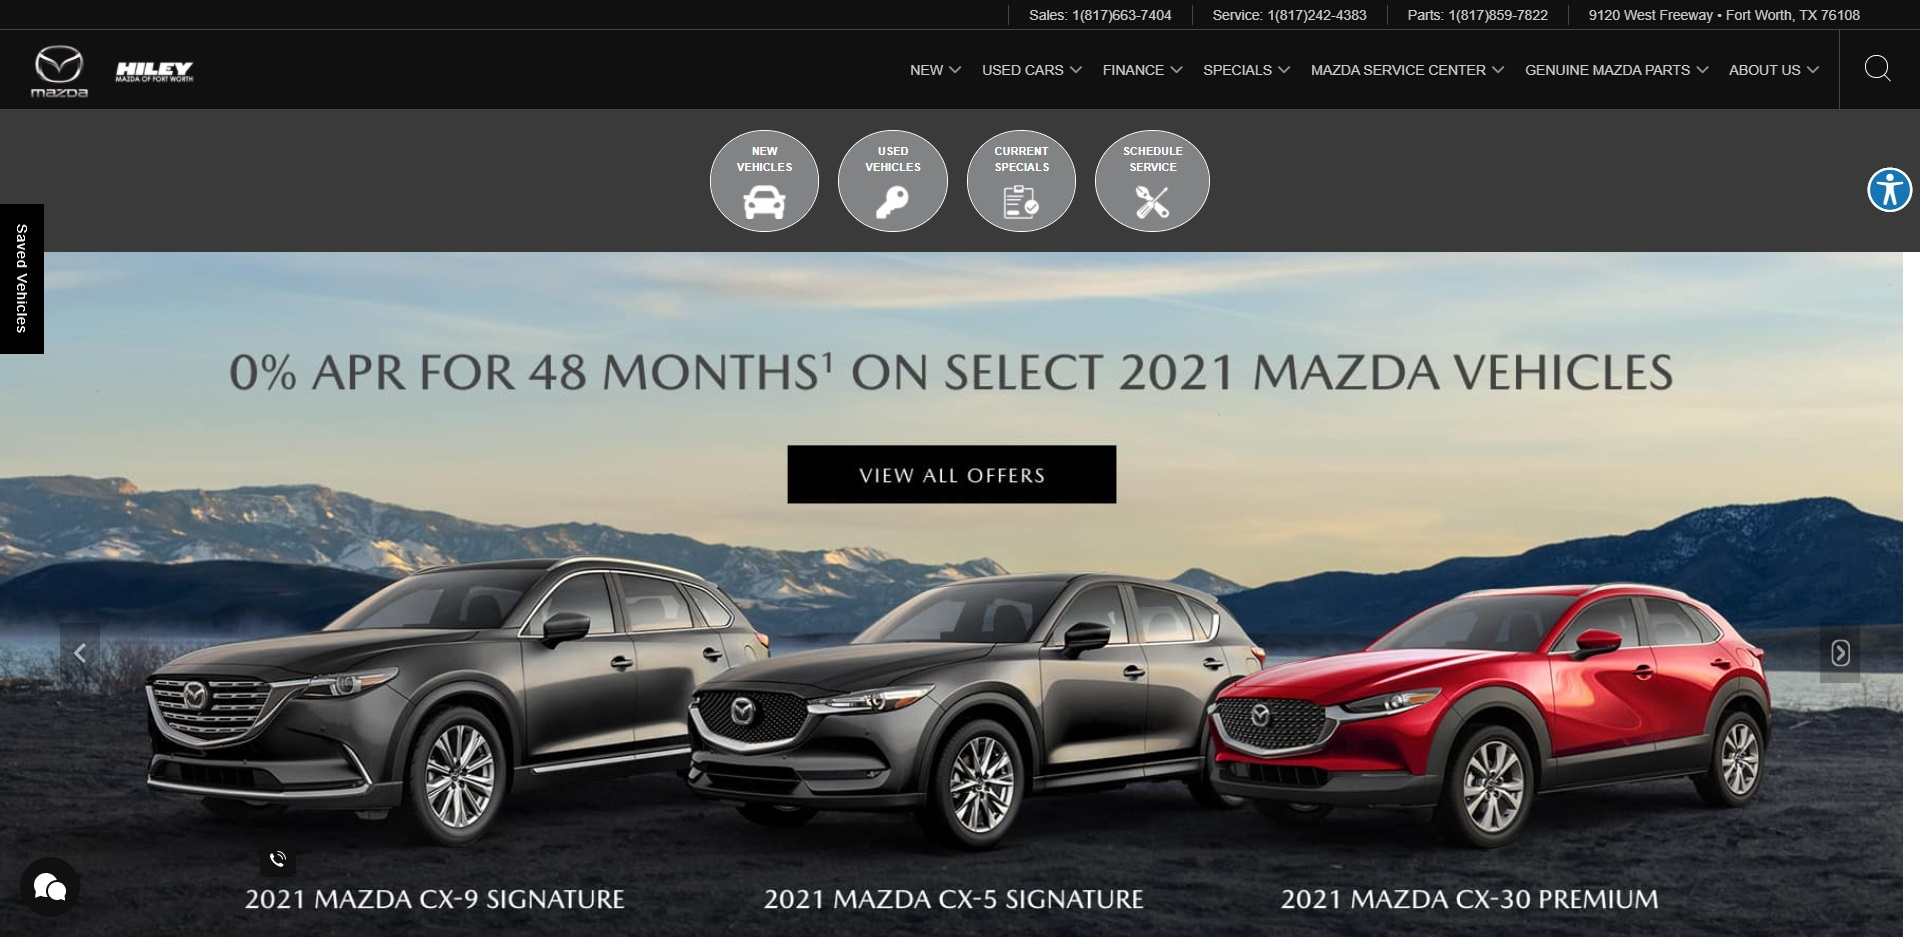 5 Best Mazda Dealers in Fort Worth